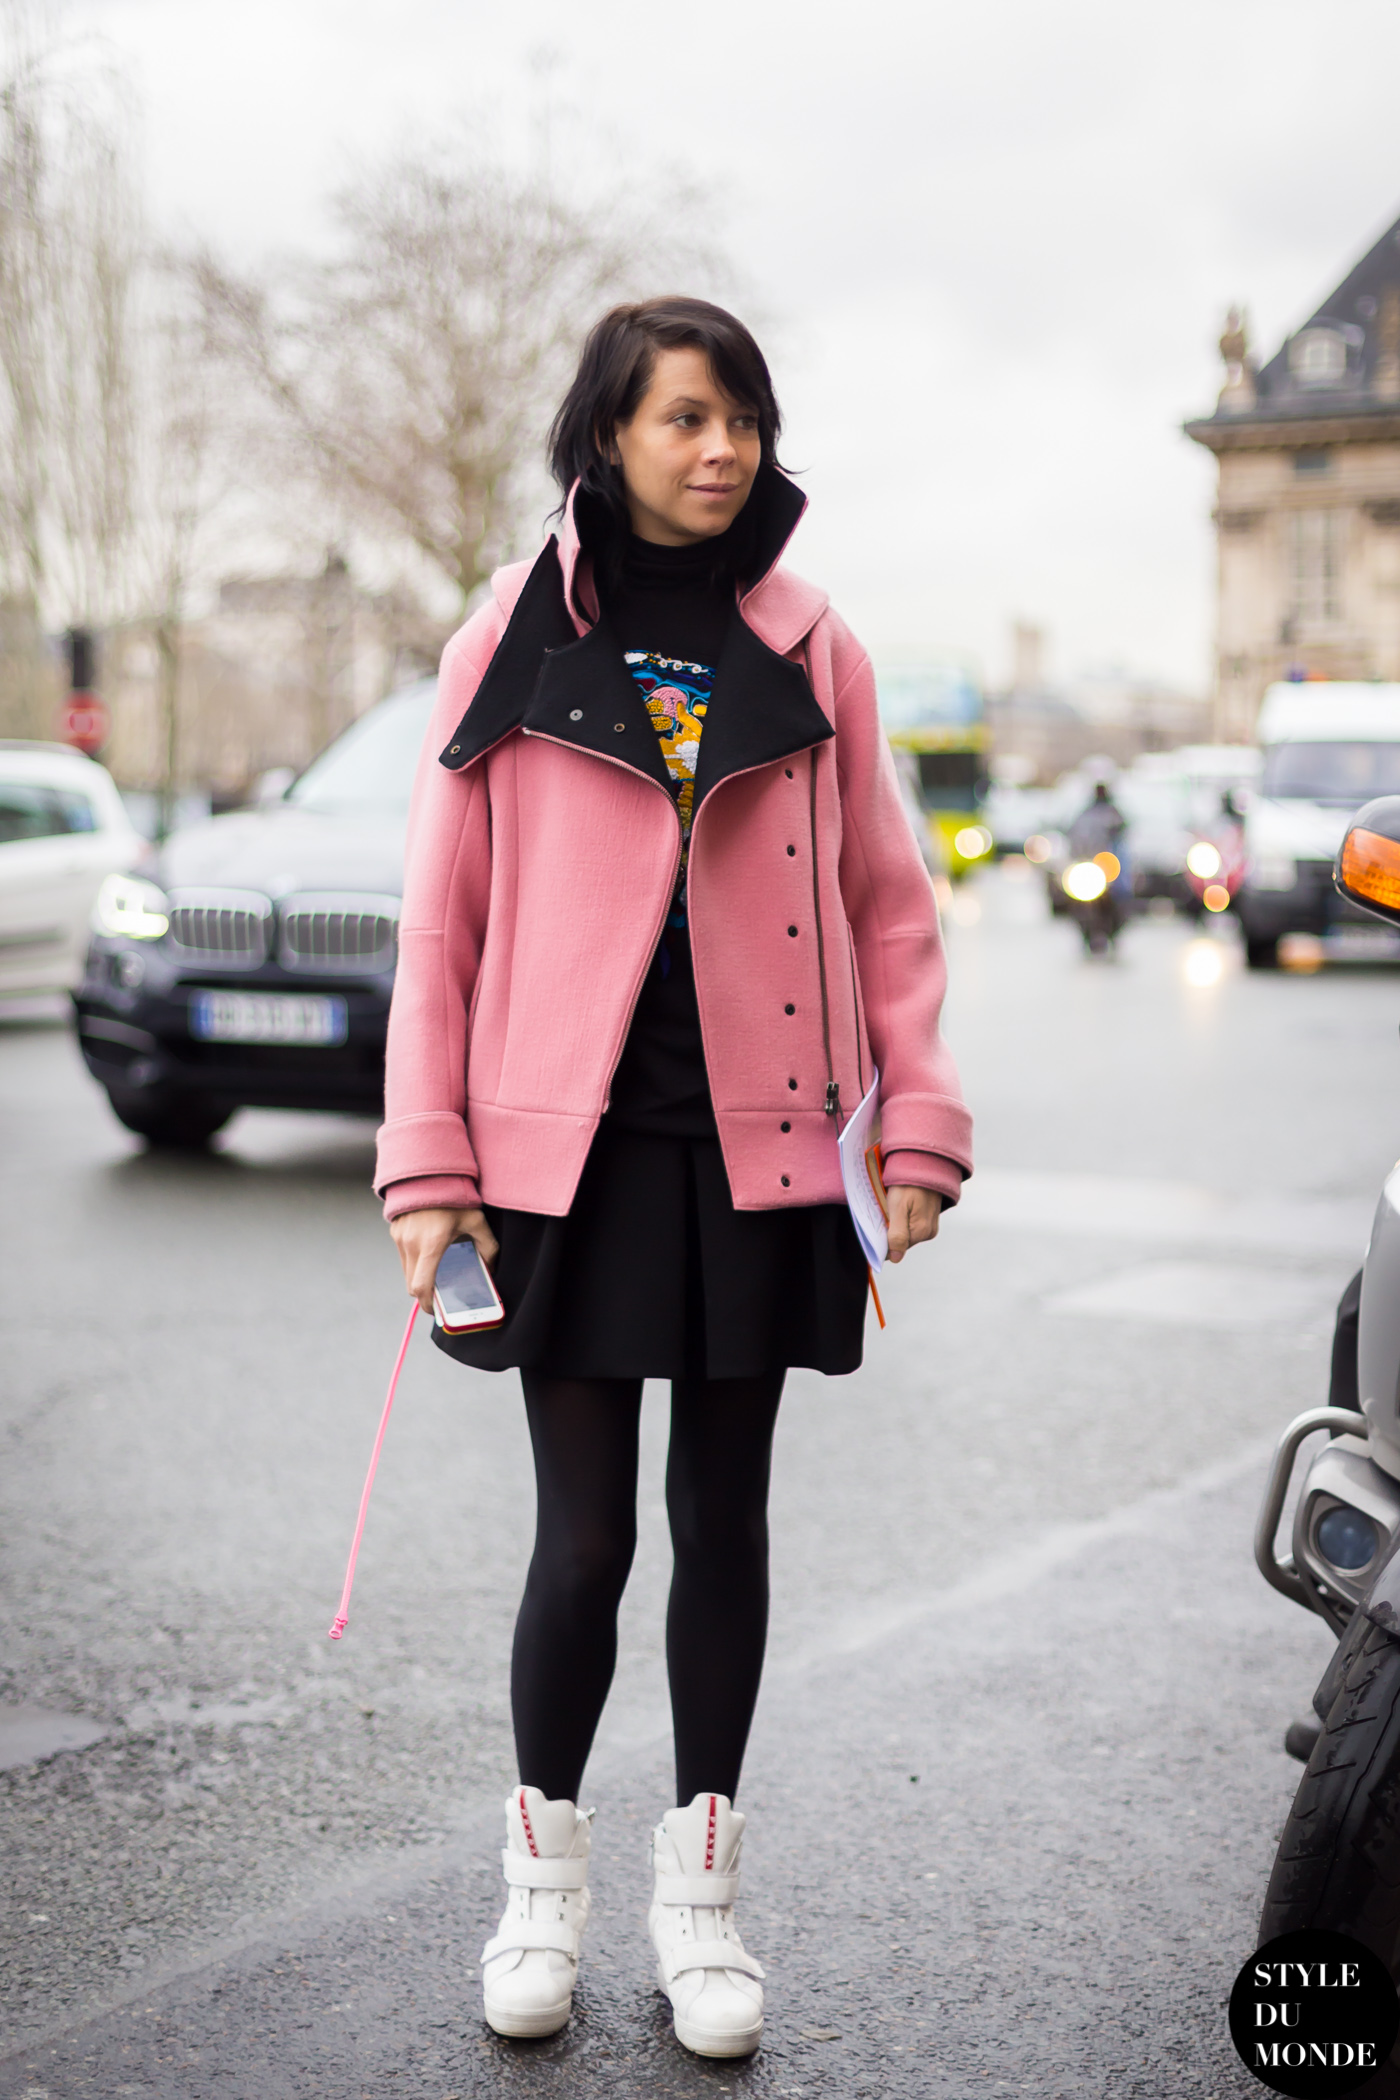 Charlotte Stockdale Street Style Street Fashion Streetsnaps by STYLEDUMONDE Street Style Fashion Blog